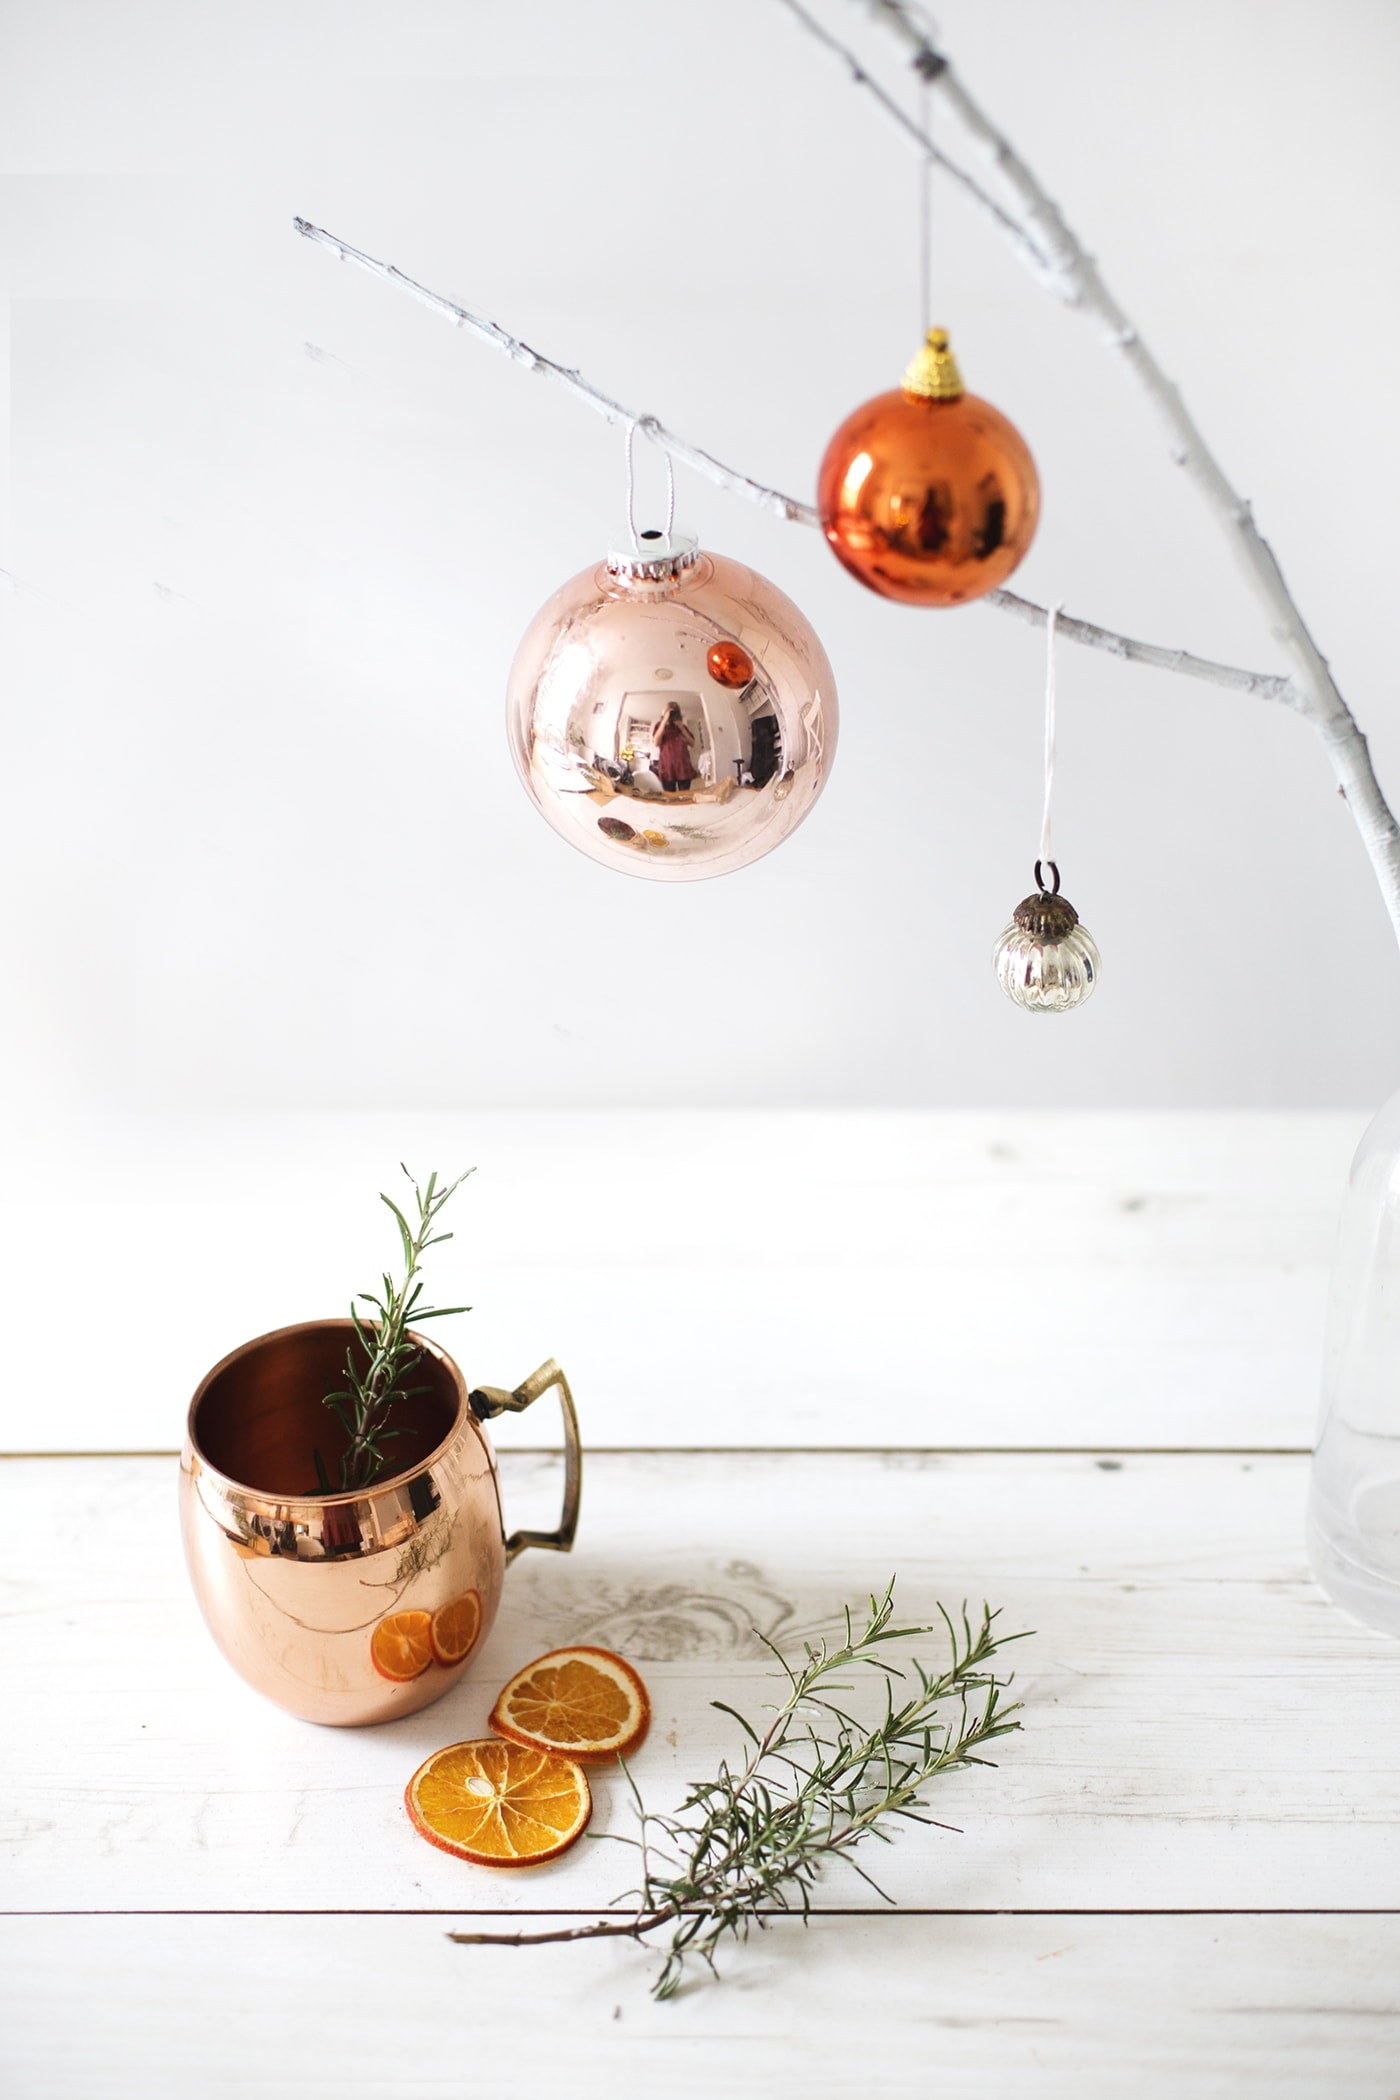 December styling the seasons | baubles and cocktails